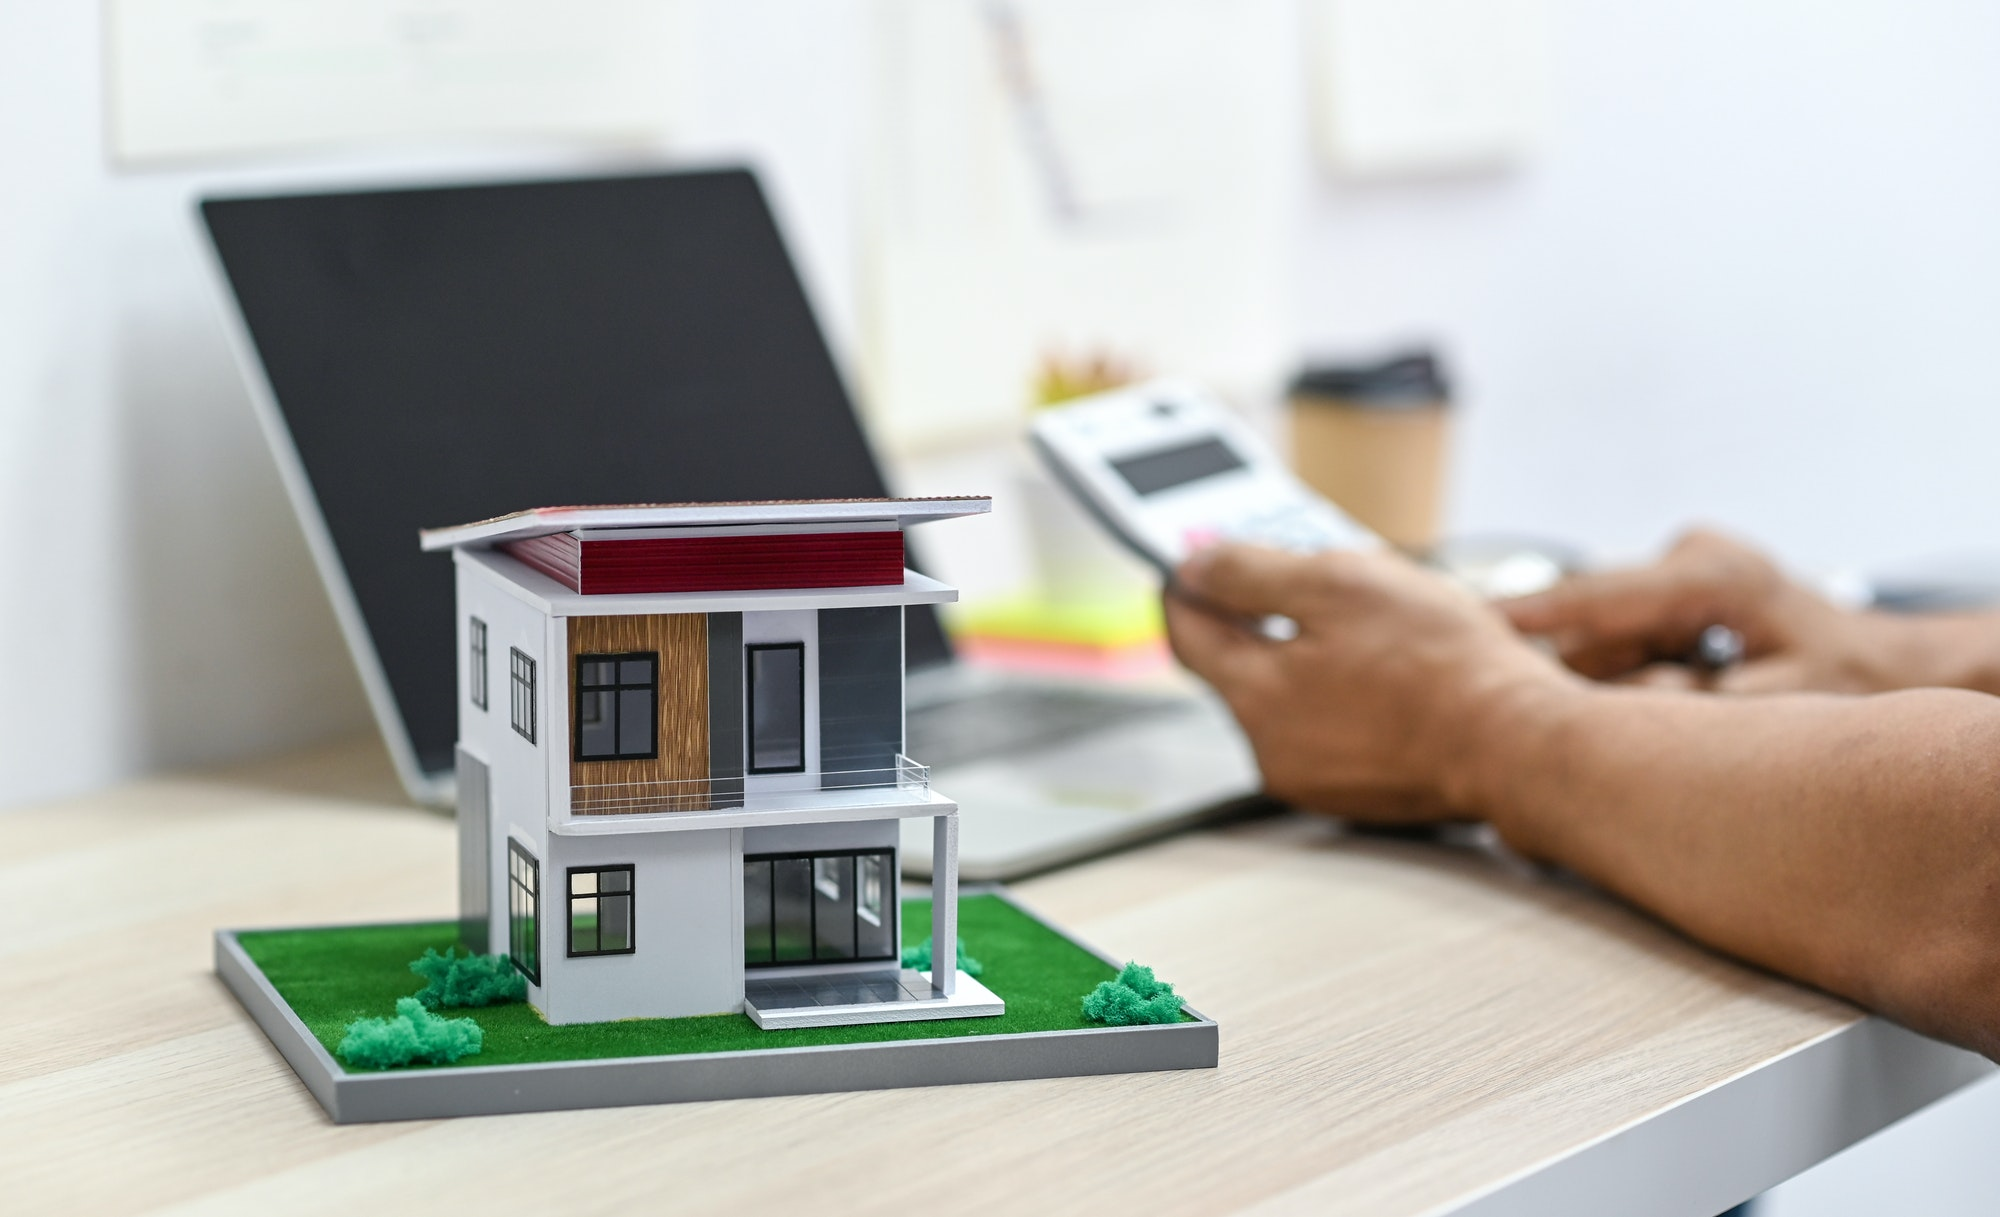 Model house on a table with blurry a person background using calculator and a laptop on the table.